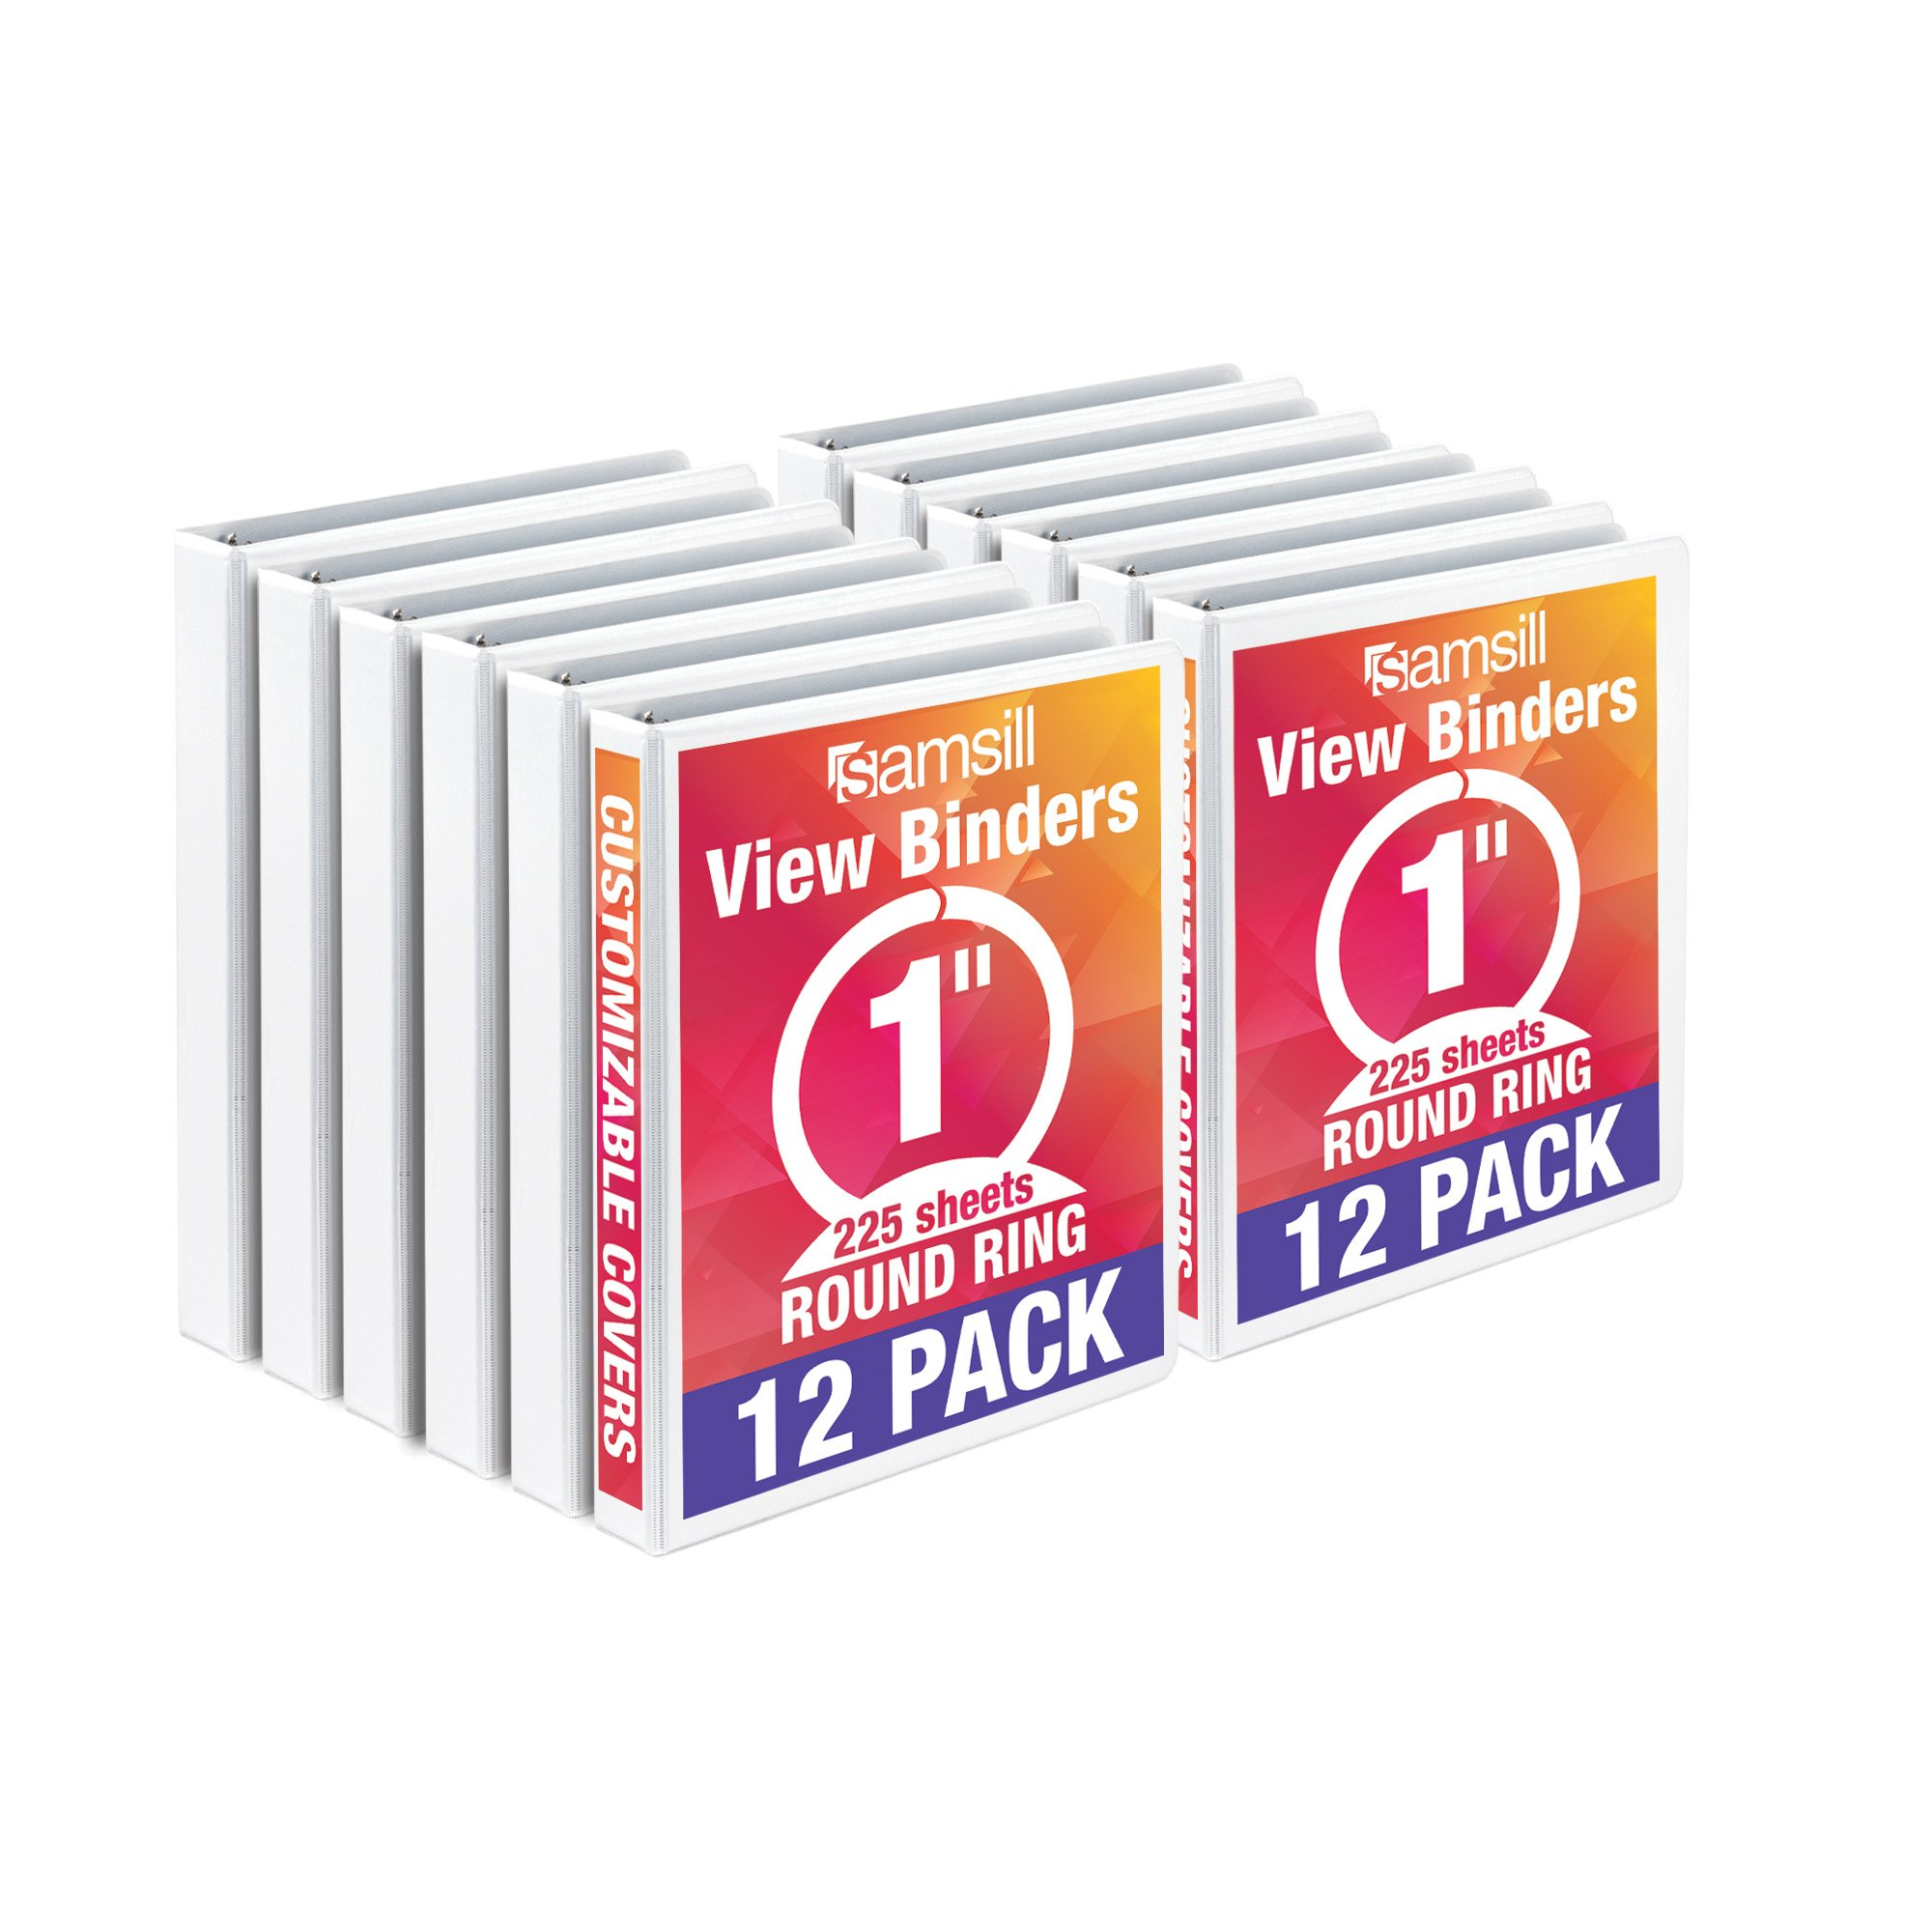 Samsill Economy 3 Ring View Binders, 1 Inch Round Ring, Customizable Clear View Cover, White, Bulk Binders - 12 Pack